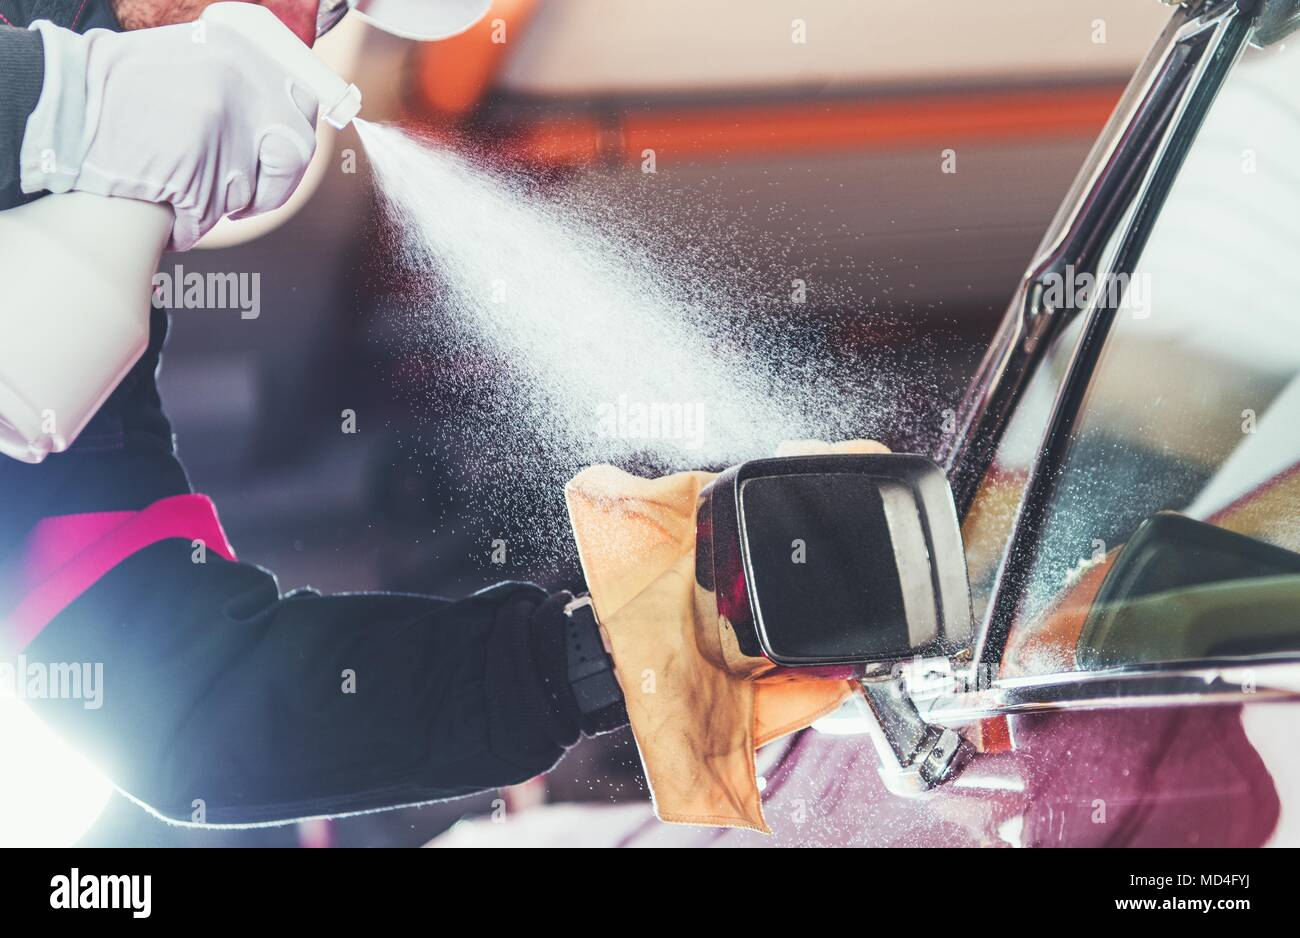 Car Wash Vehicle Detailing. Professional Cleaner Working to Clean Classic Car Body. - Stock Image